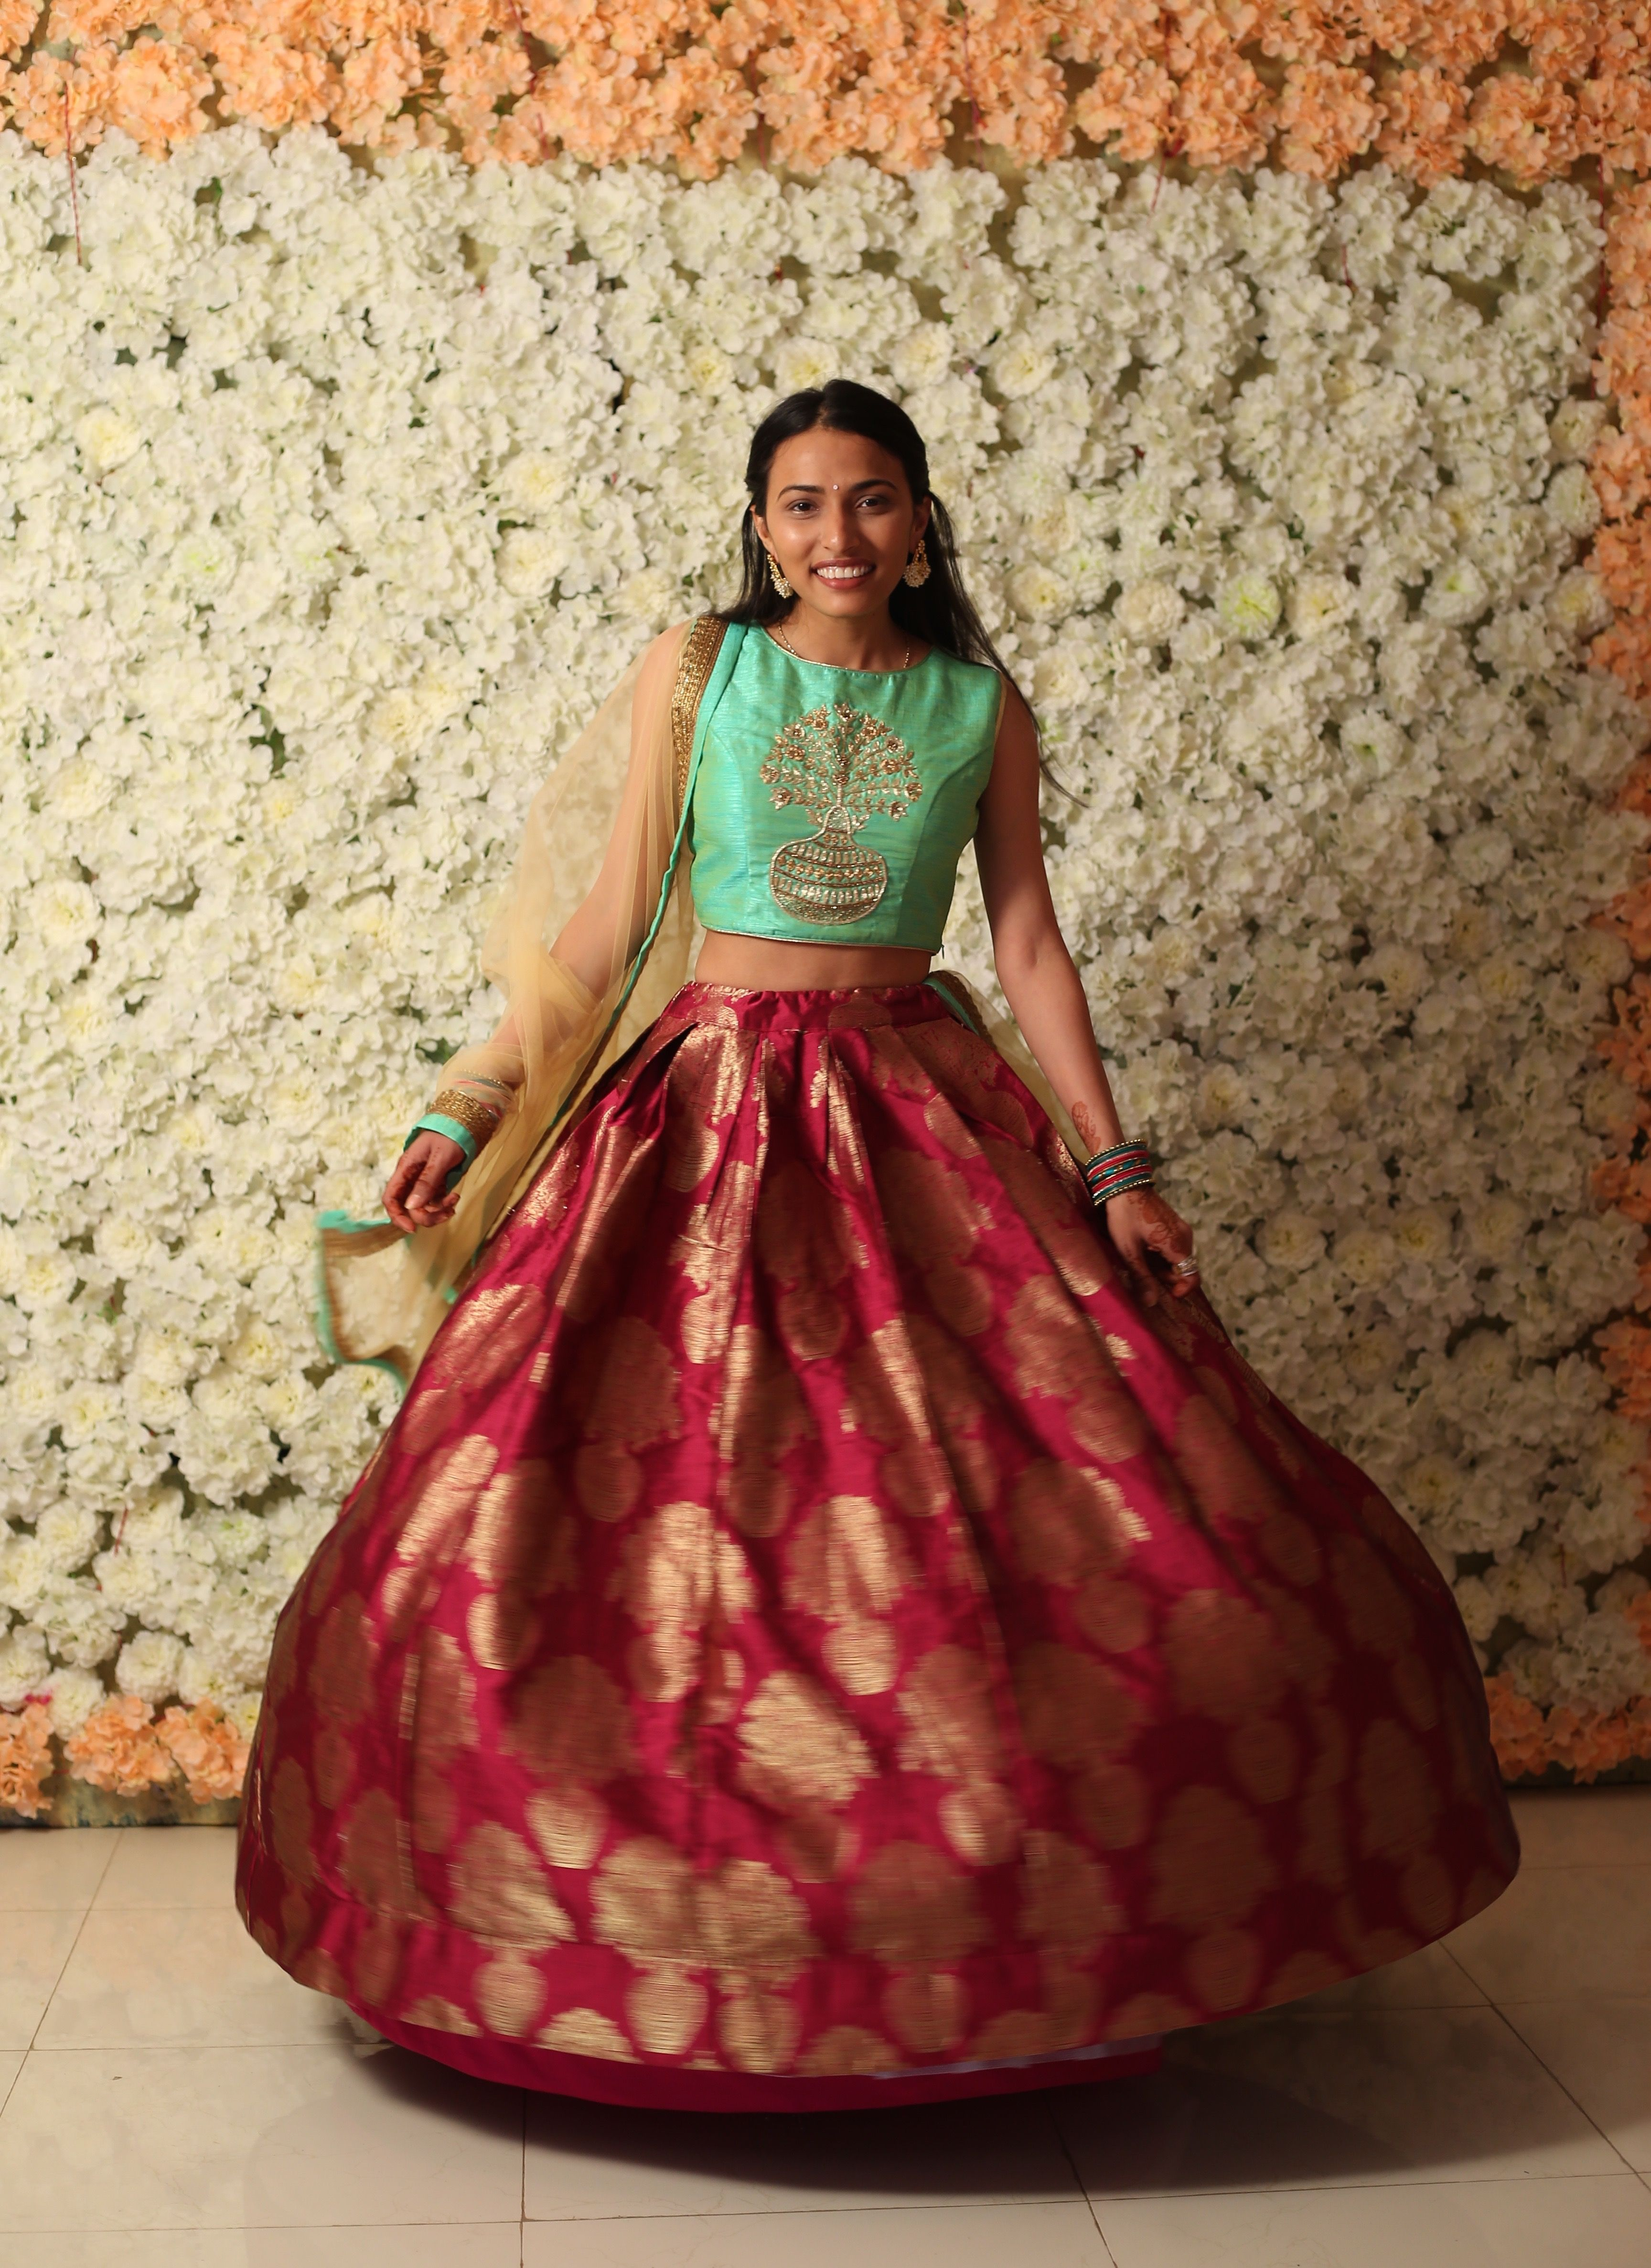 Indian Outfit High Waisted Skirt With Crop Top High Waisted Skirt Desi Fashion Fashion